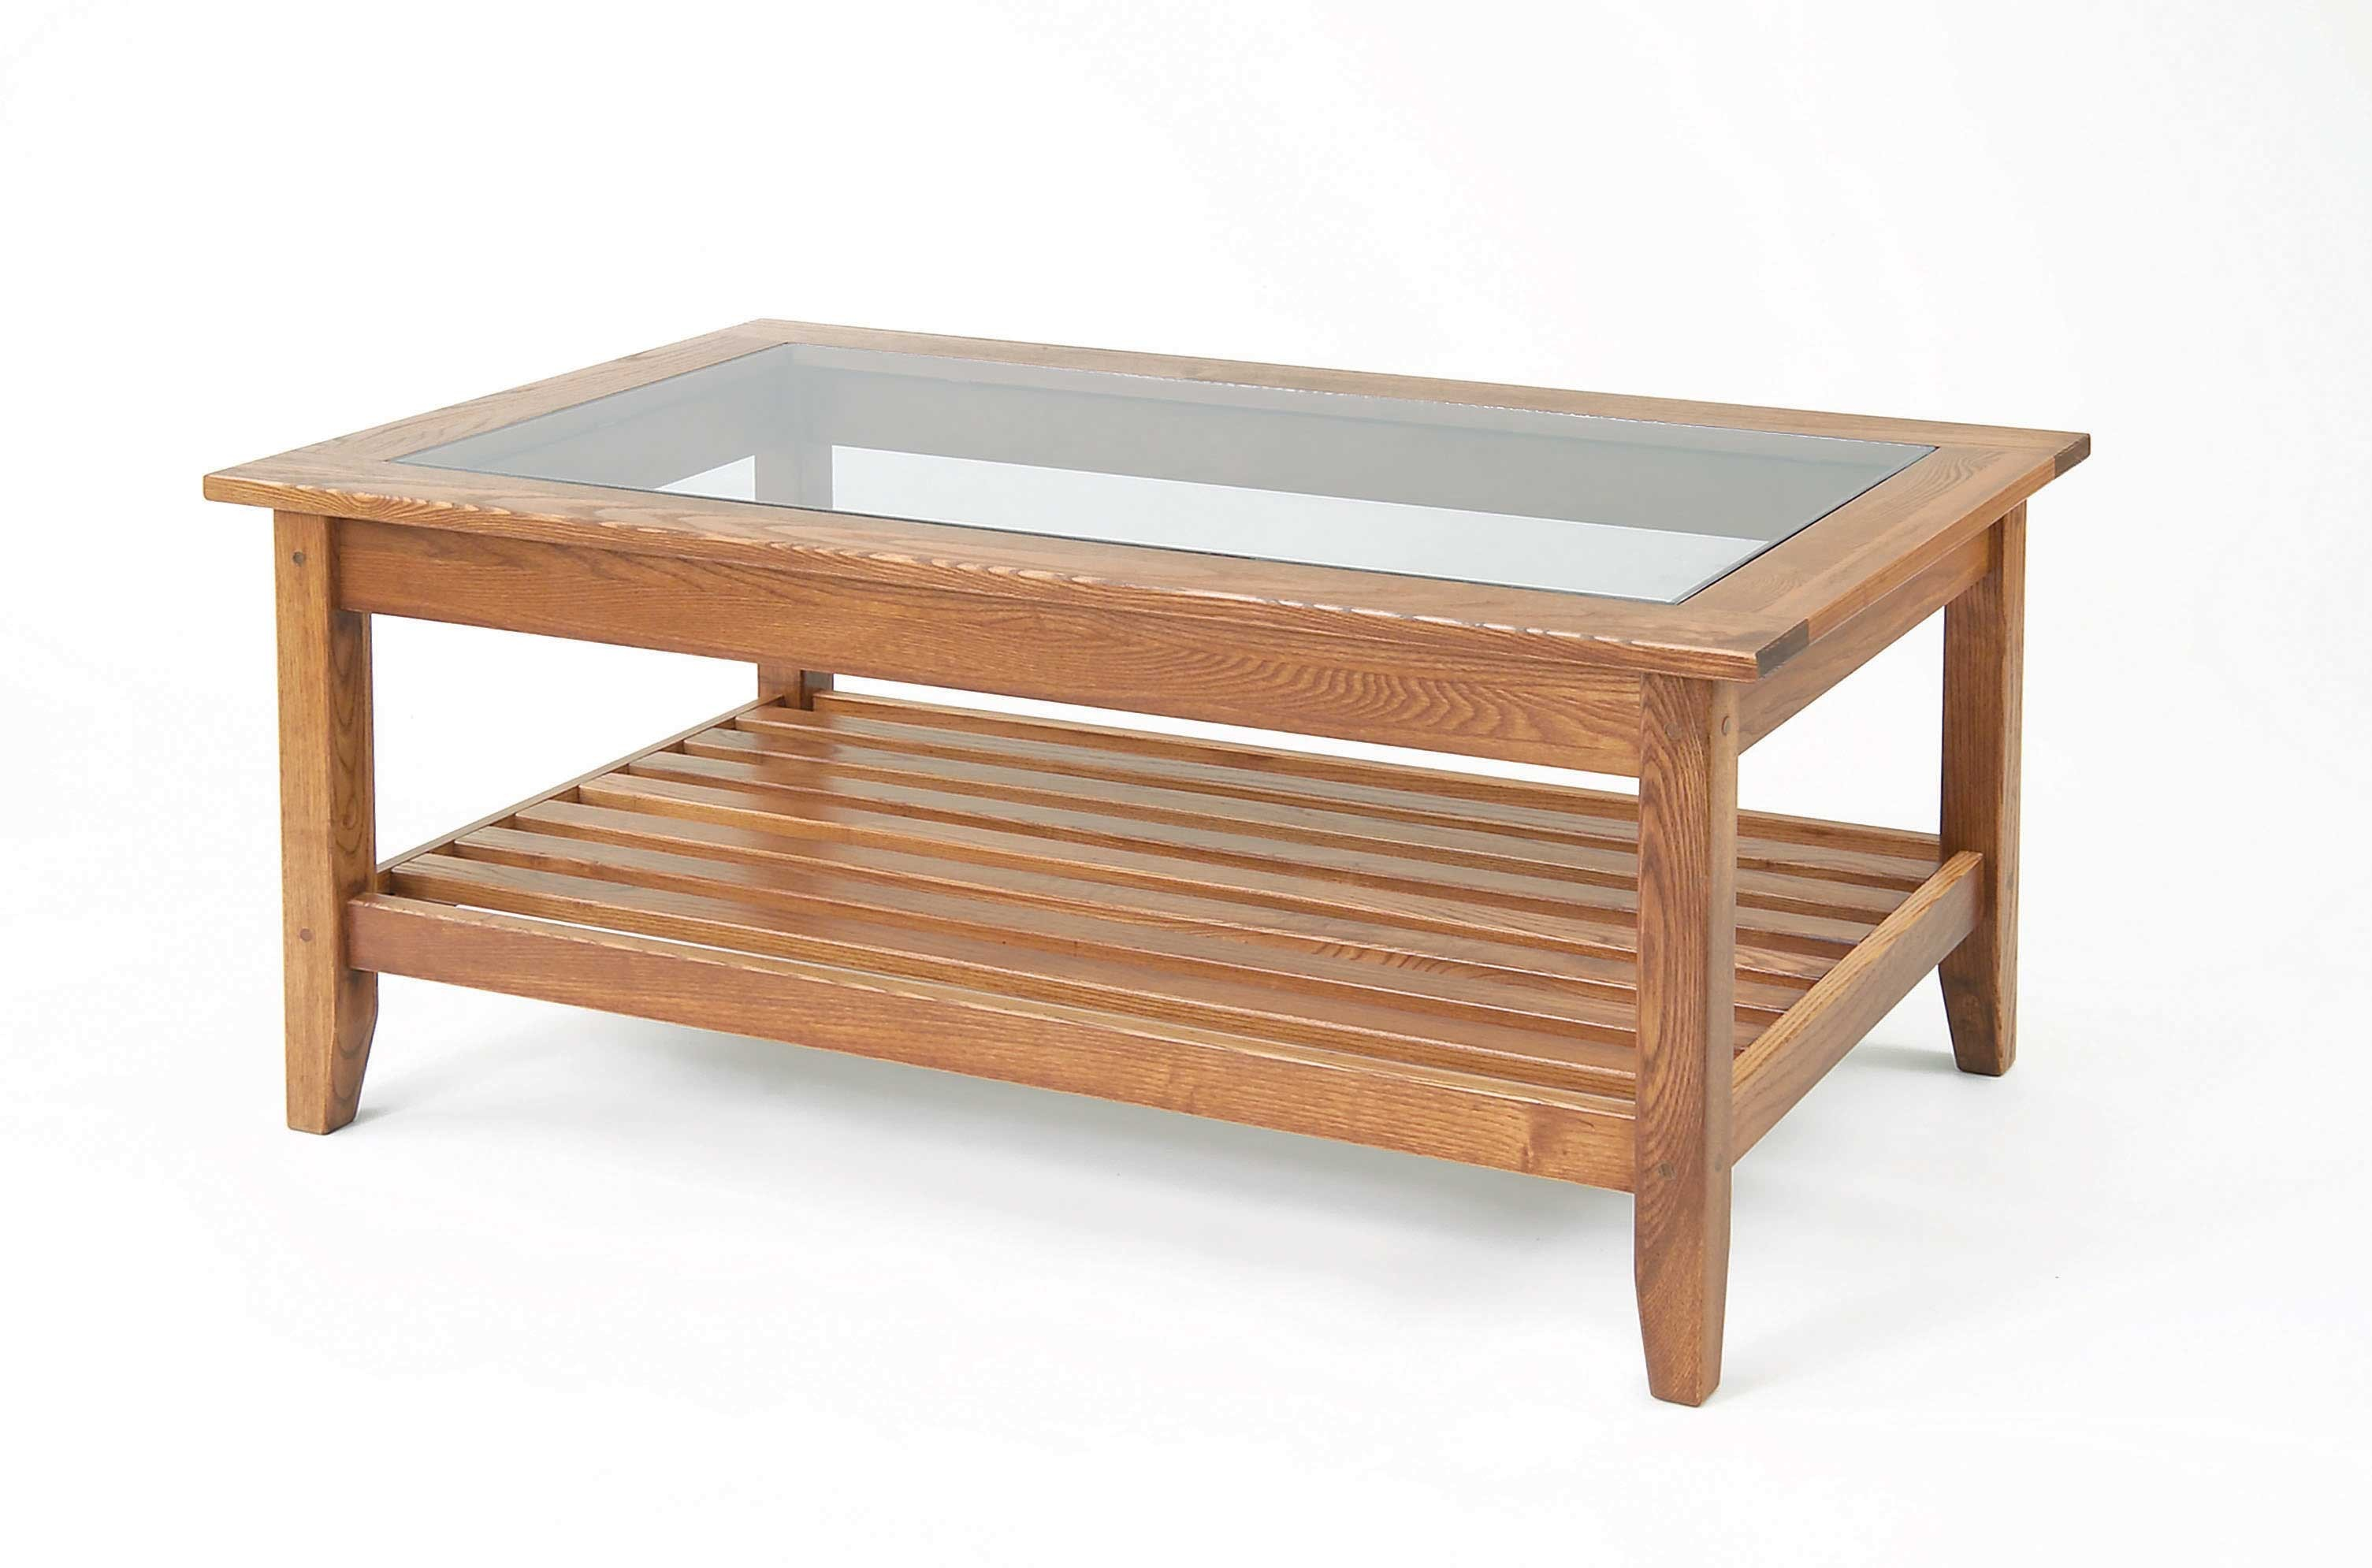 Glass For Coffee Table The Possibilities Are Endless With These Versatile Nesting Tables Of Three Different Sizes. Scatter Them As Side Tables (Image 7 of 9)